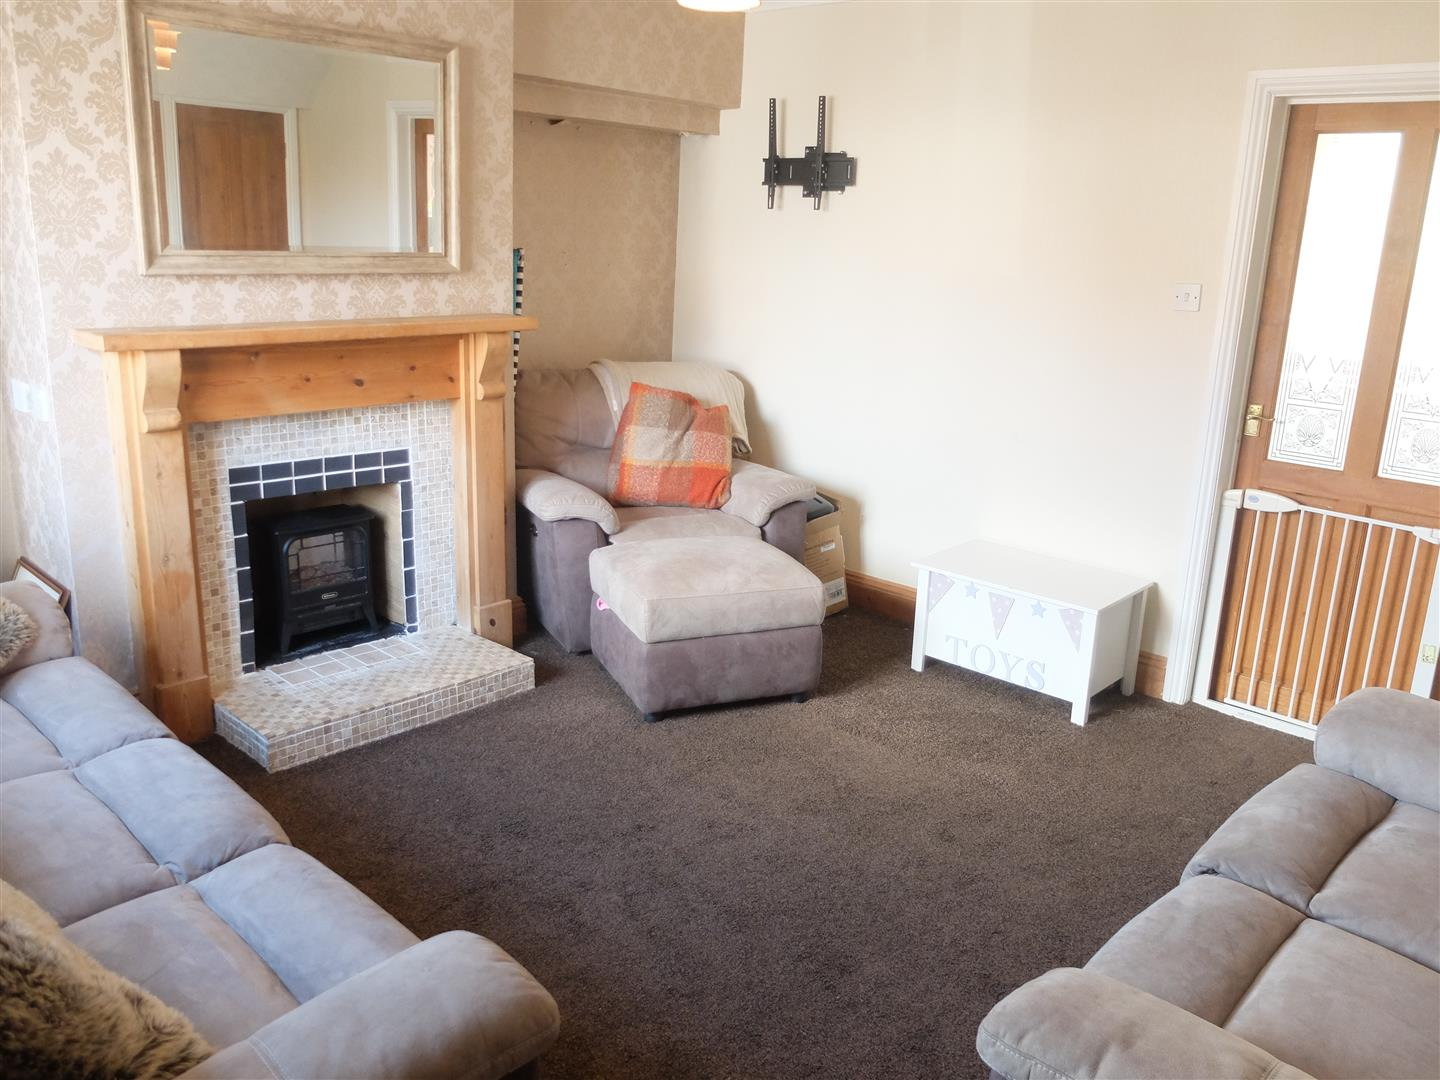 3 Bedrooms House - Semi-Detached For Sale 42 Lund Crescent Carlisle